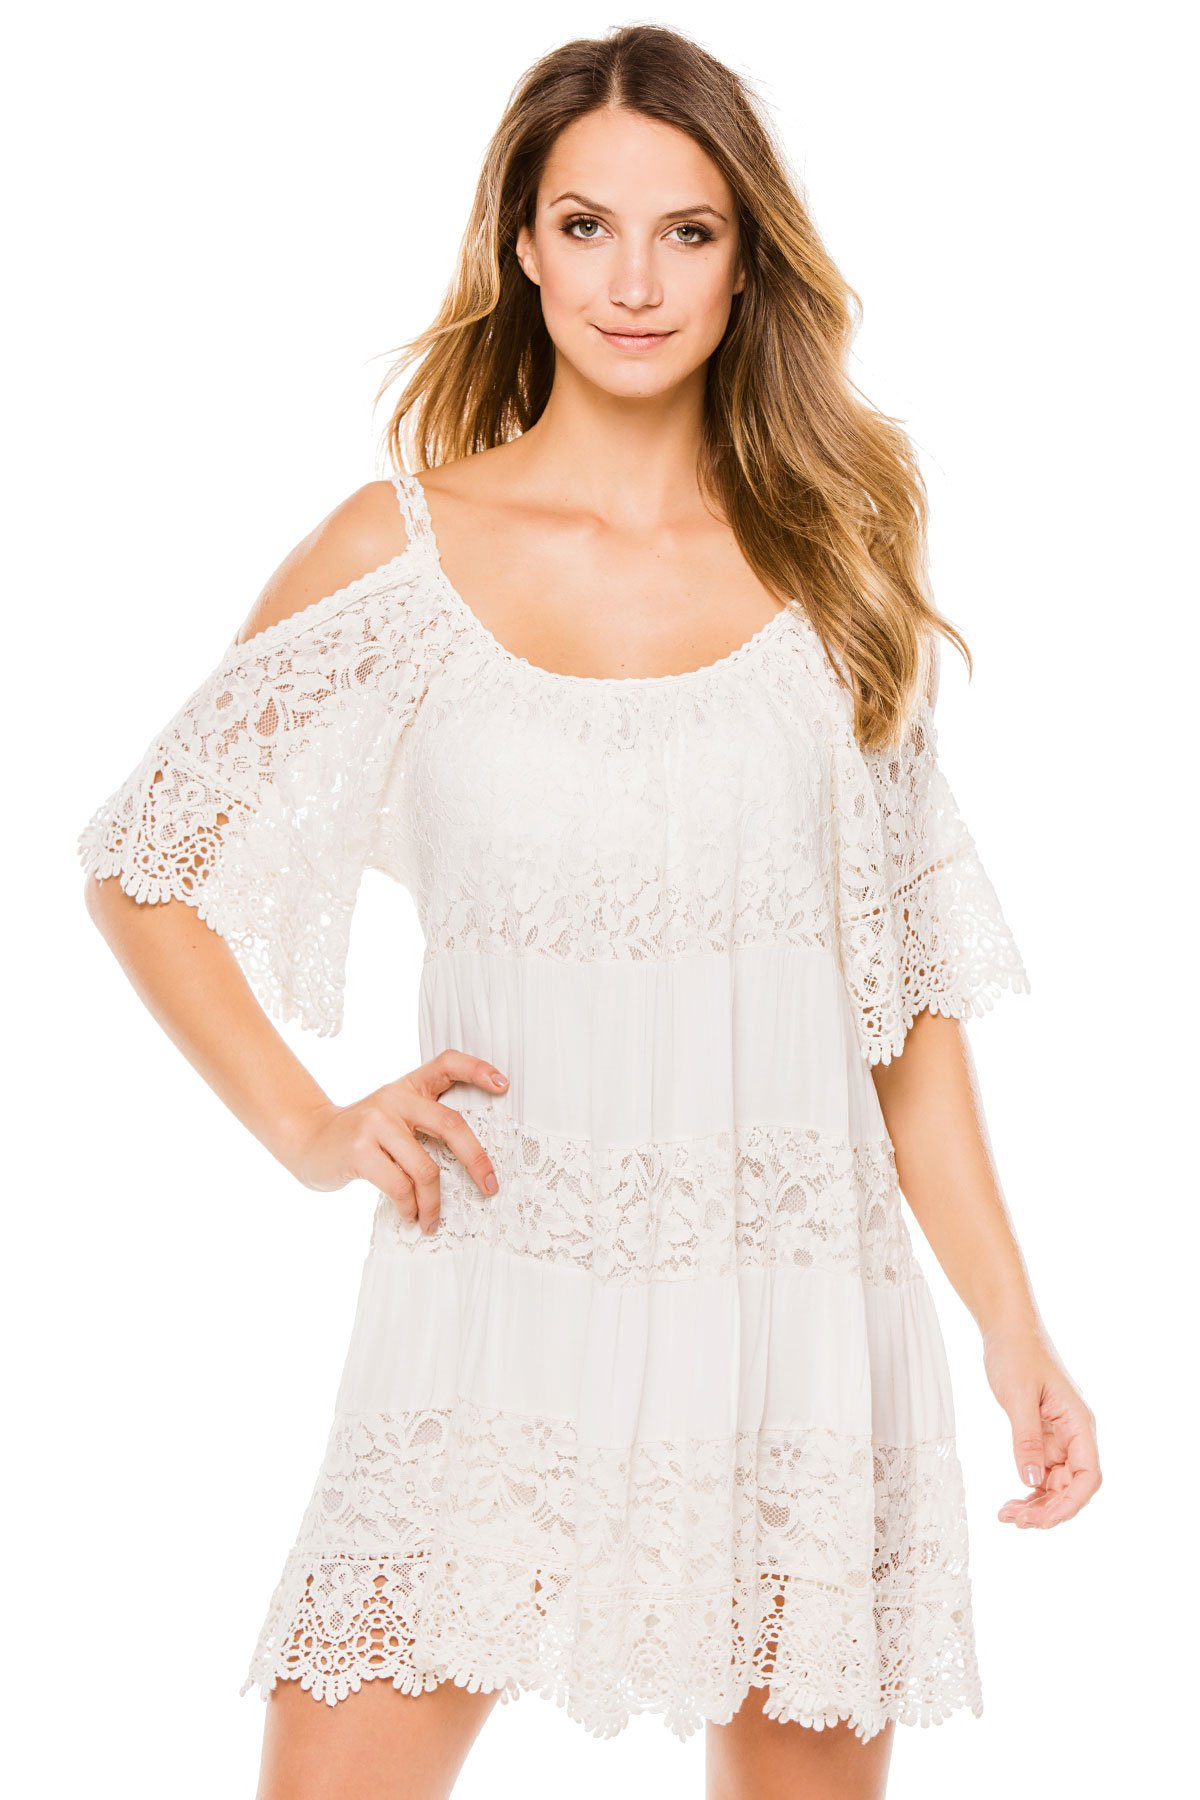 Muche et Muchette Women's Cottons Dress Swim Cover Up White One